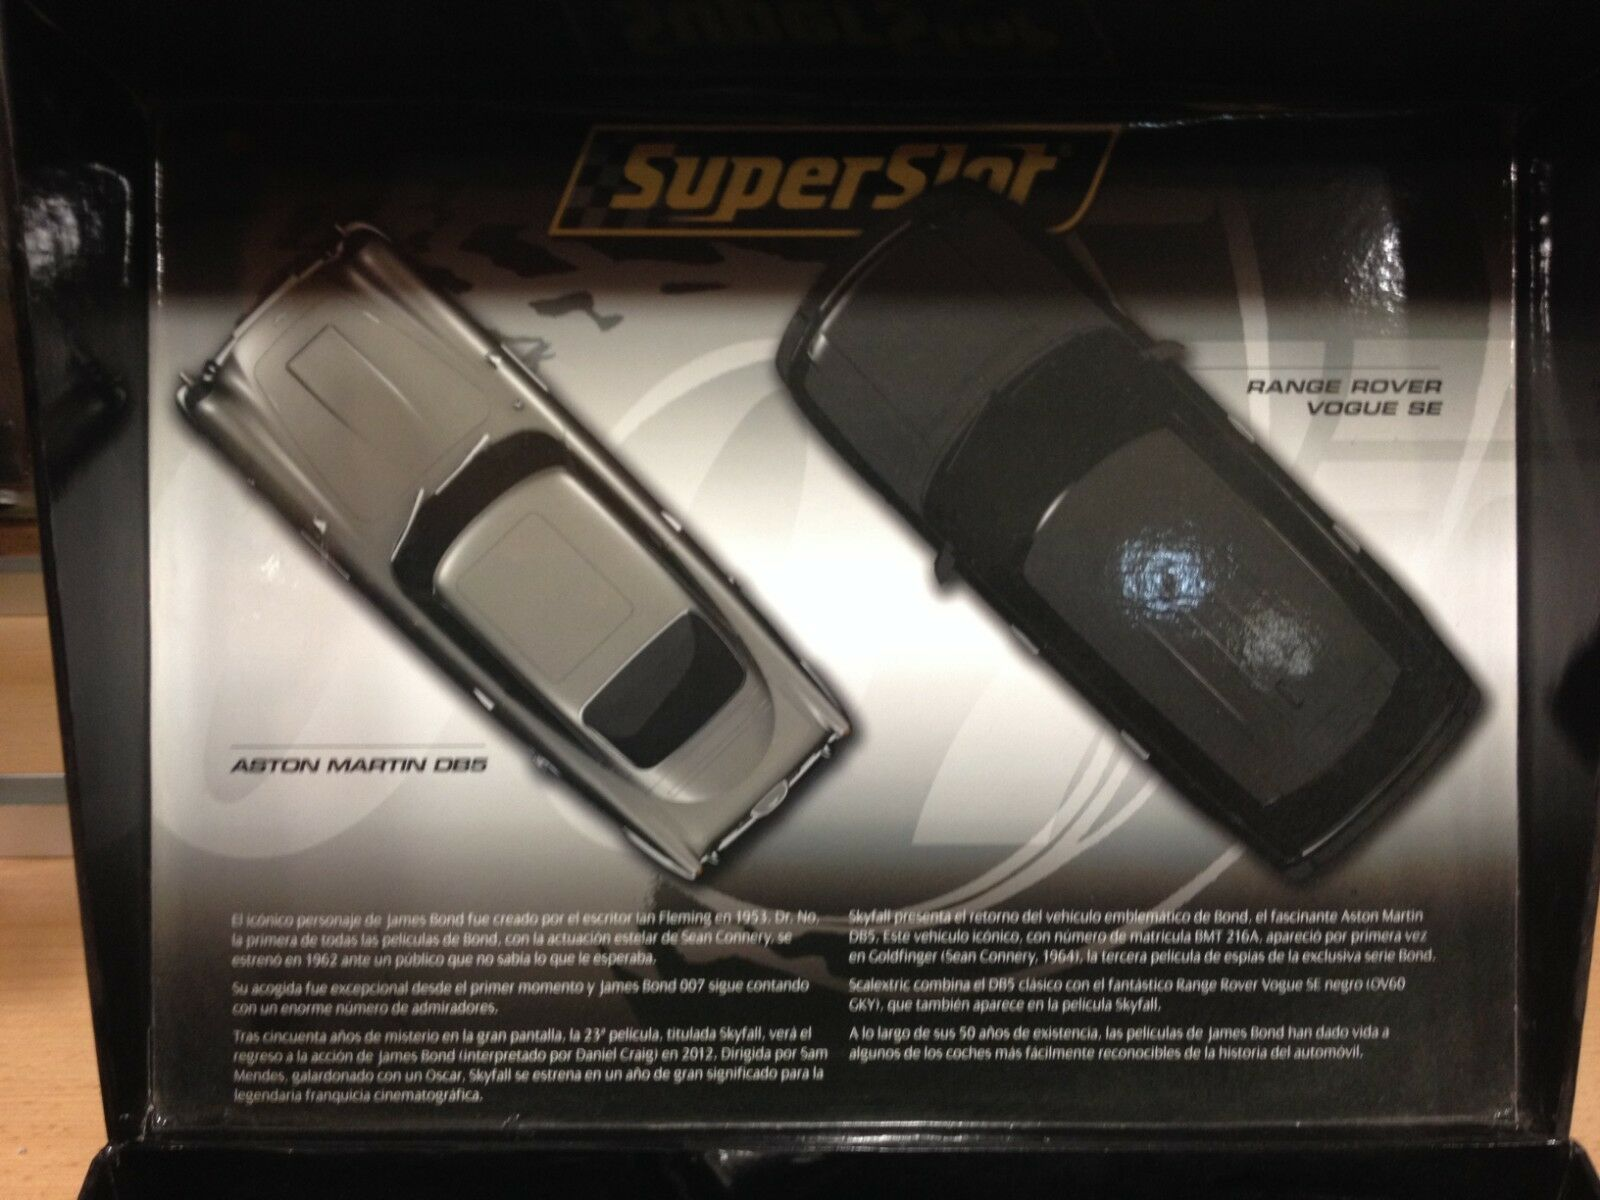 Superslot,Aston Martin DB5 & Range Rover Vogue SE,Ref.01-90033